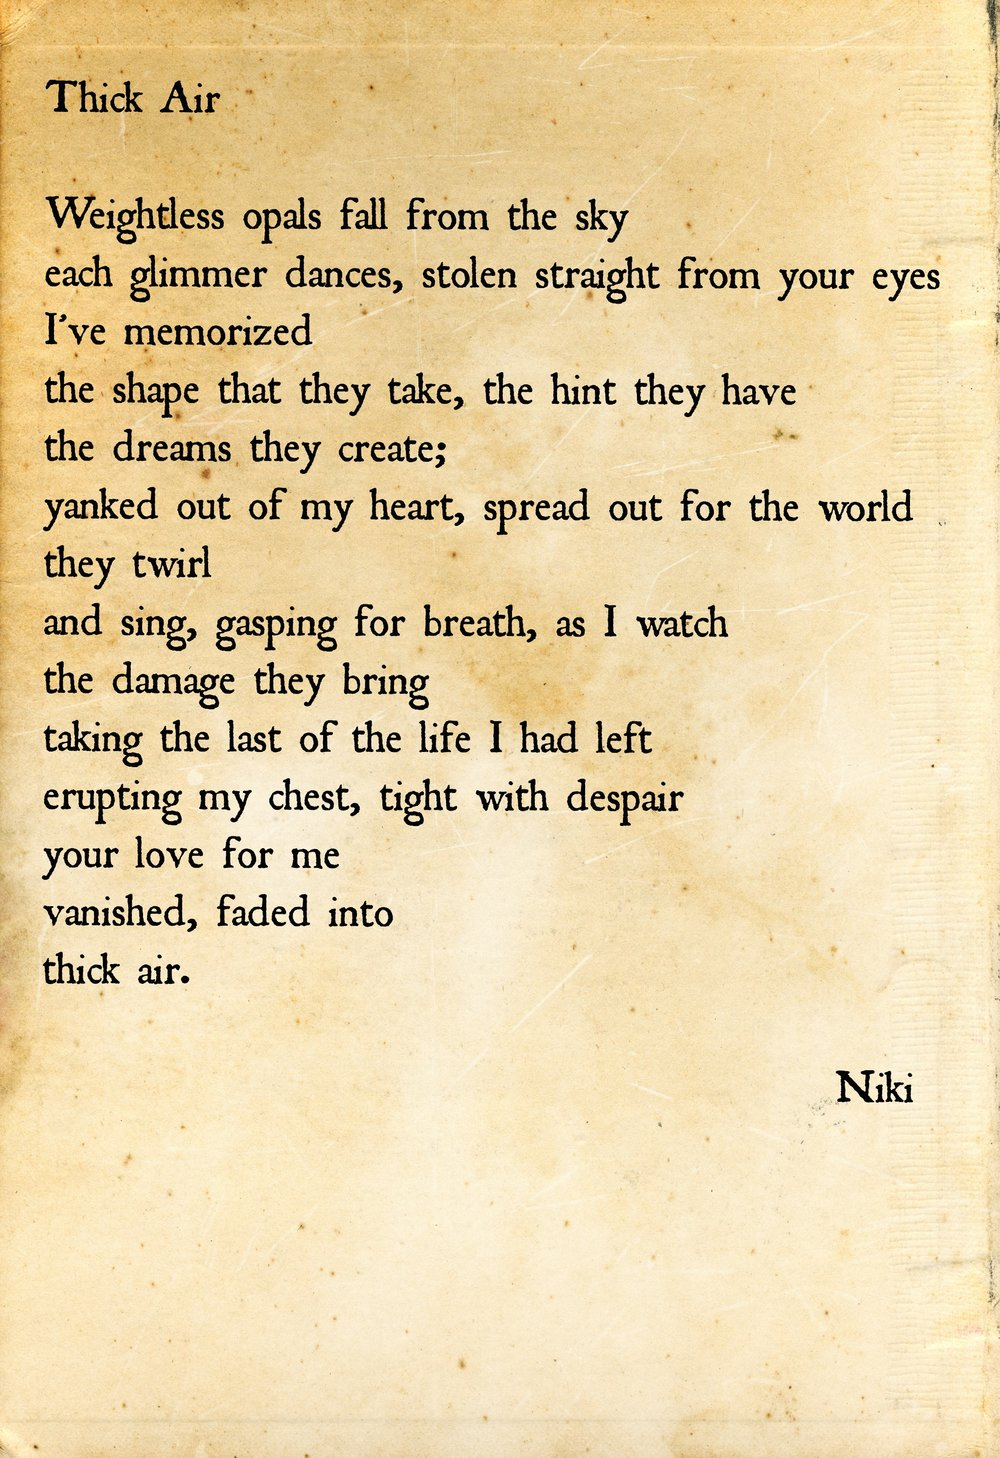 thick air niki poetry